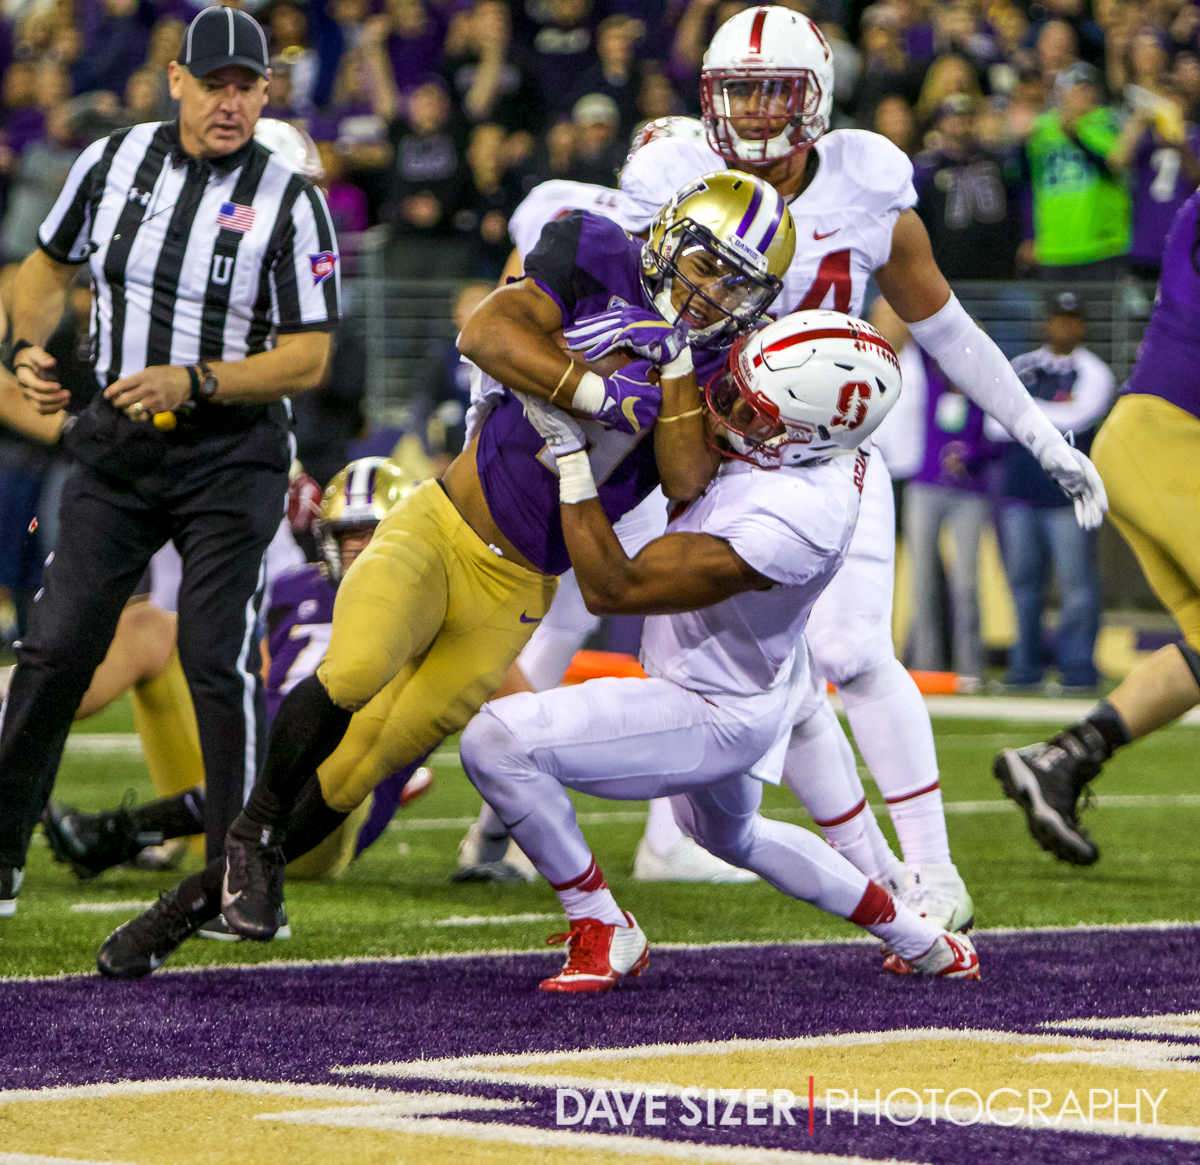 Myles Gaskin plows into the end zone.